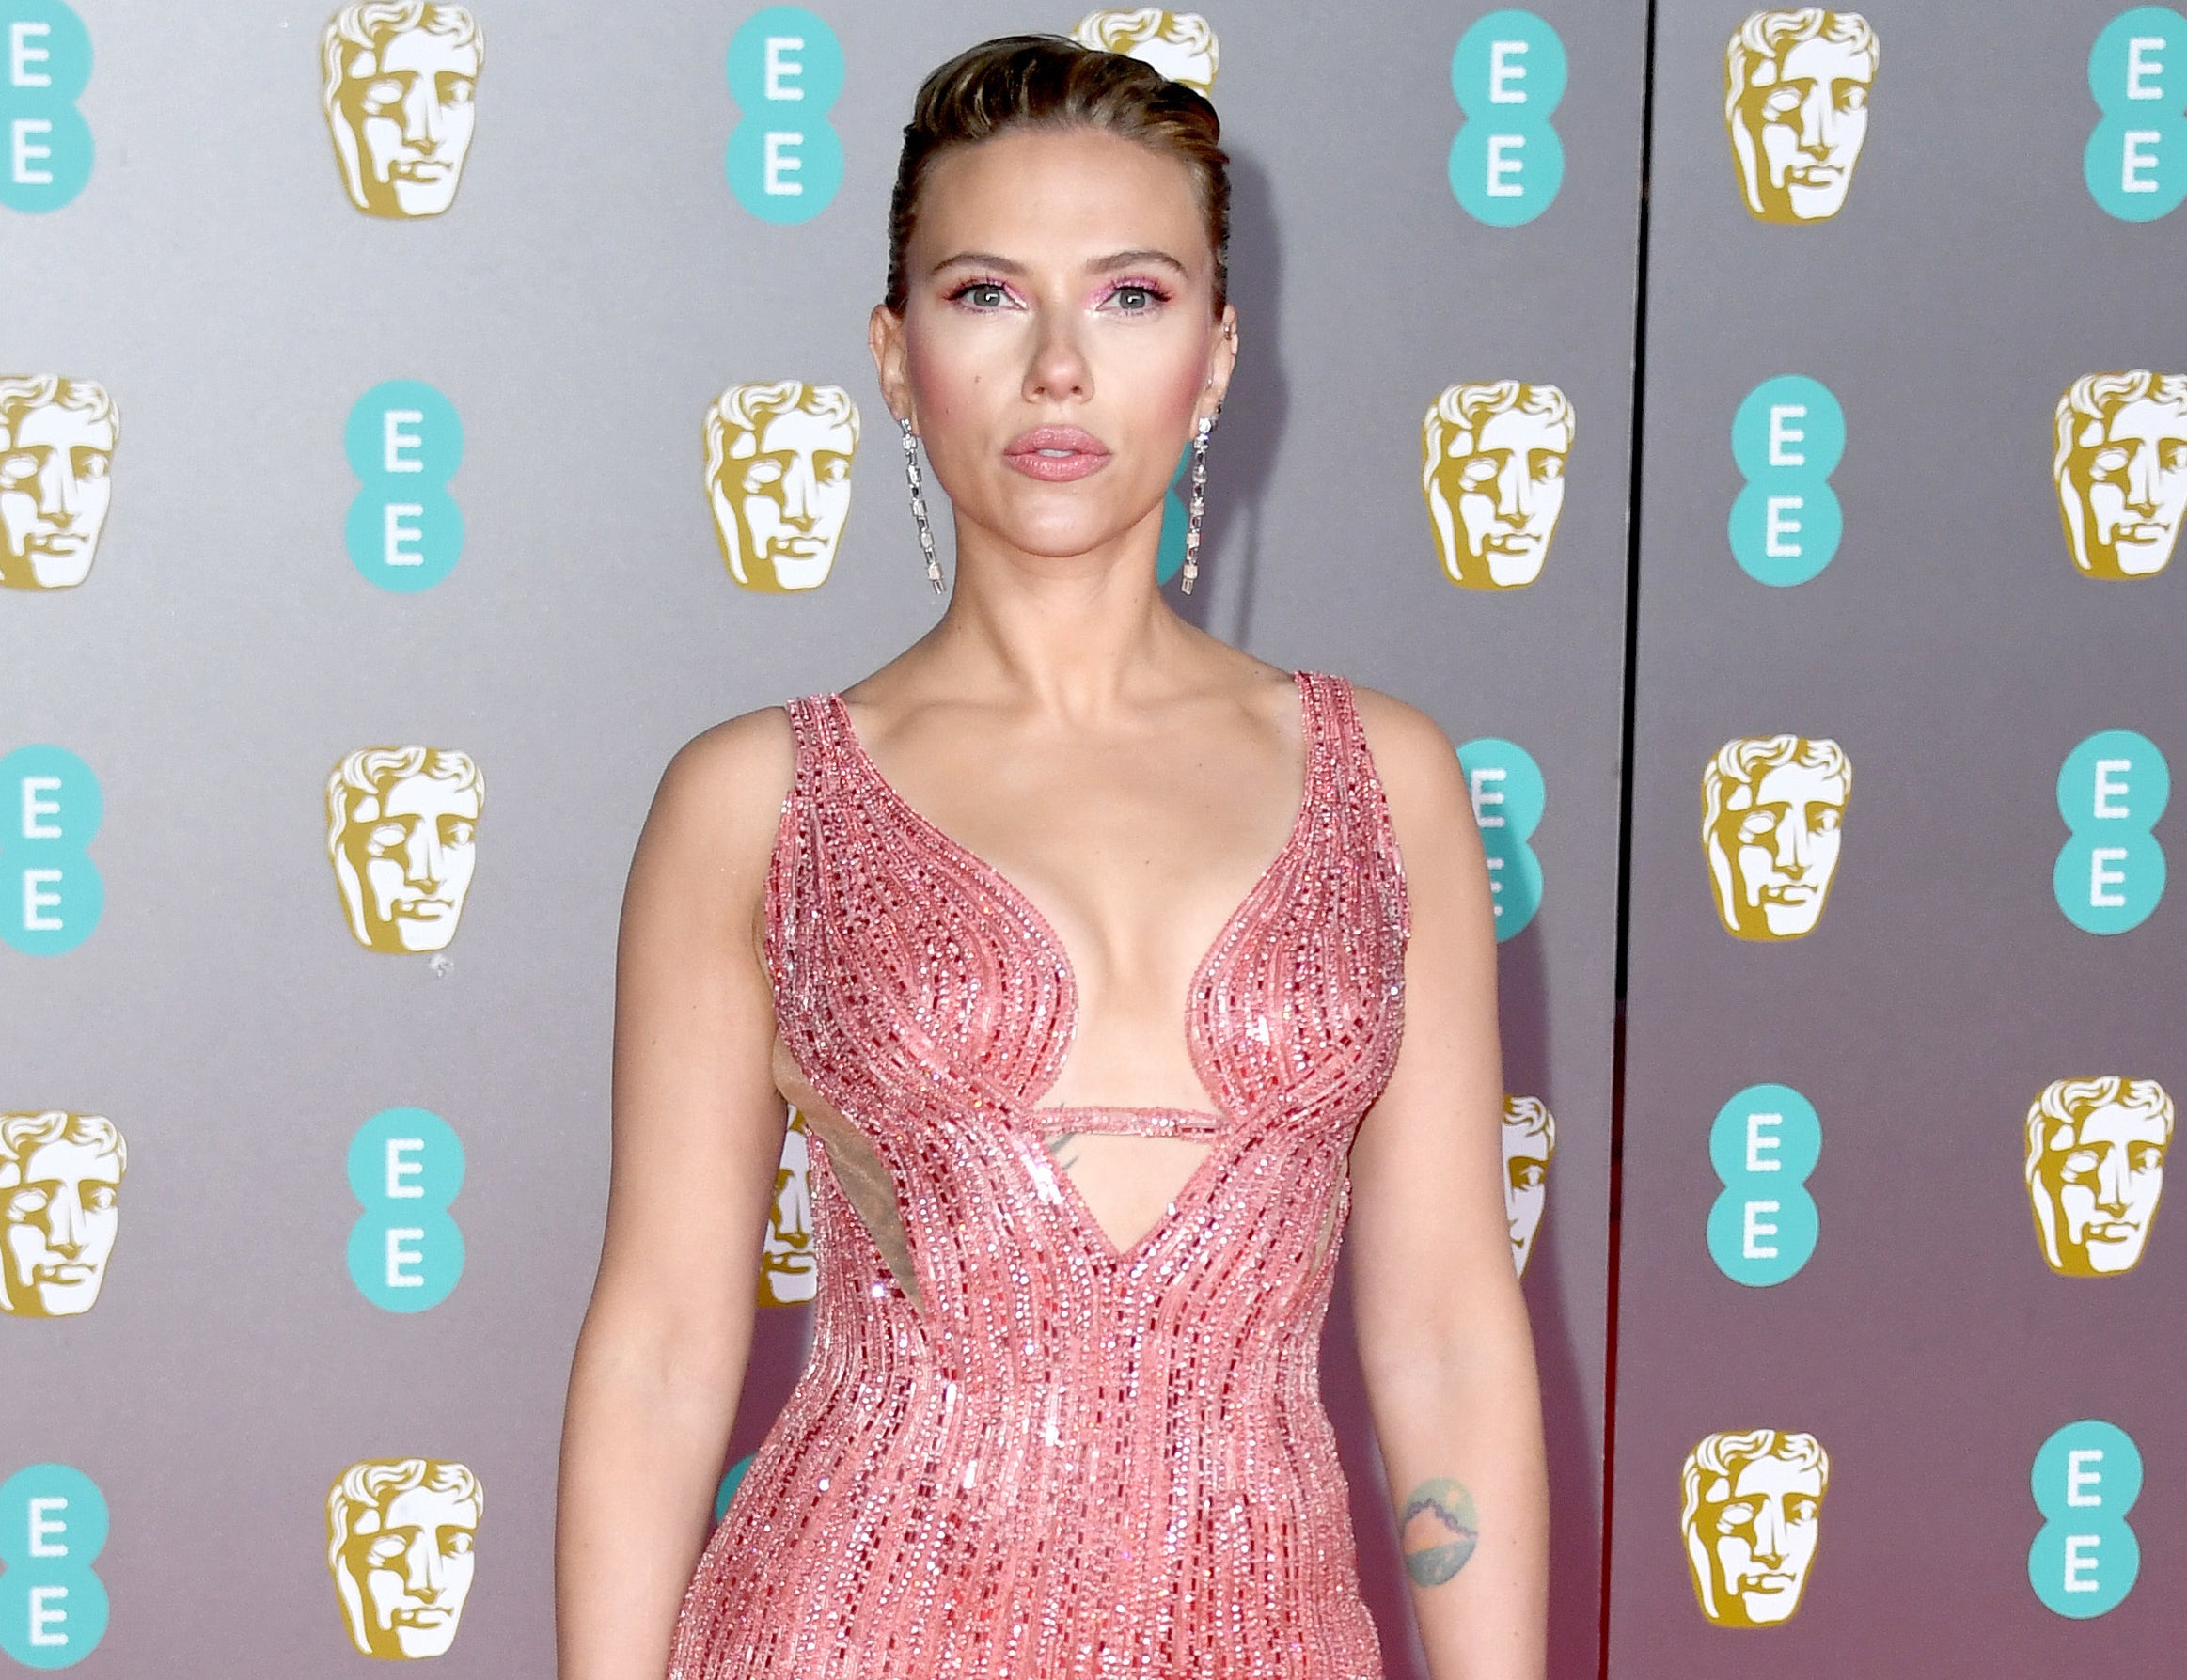 Scarlett wears a pink sequined gown to an event